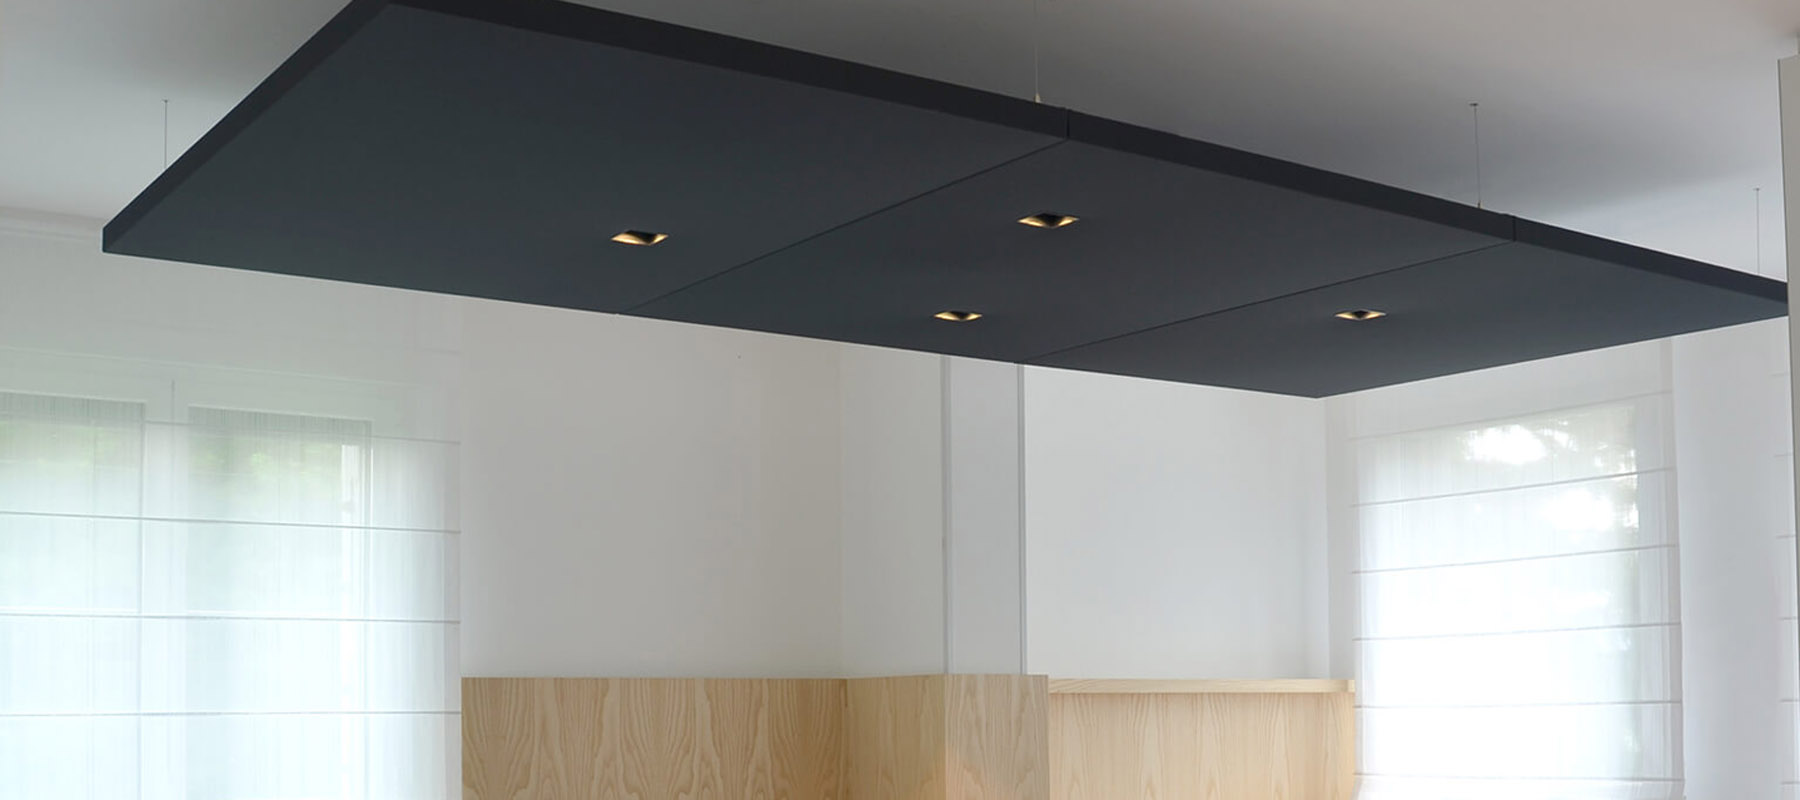 Acoustic Panels with Square LED Spotlights | Woodwood Group